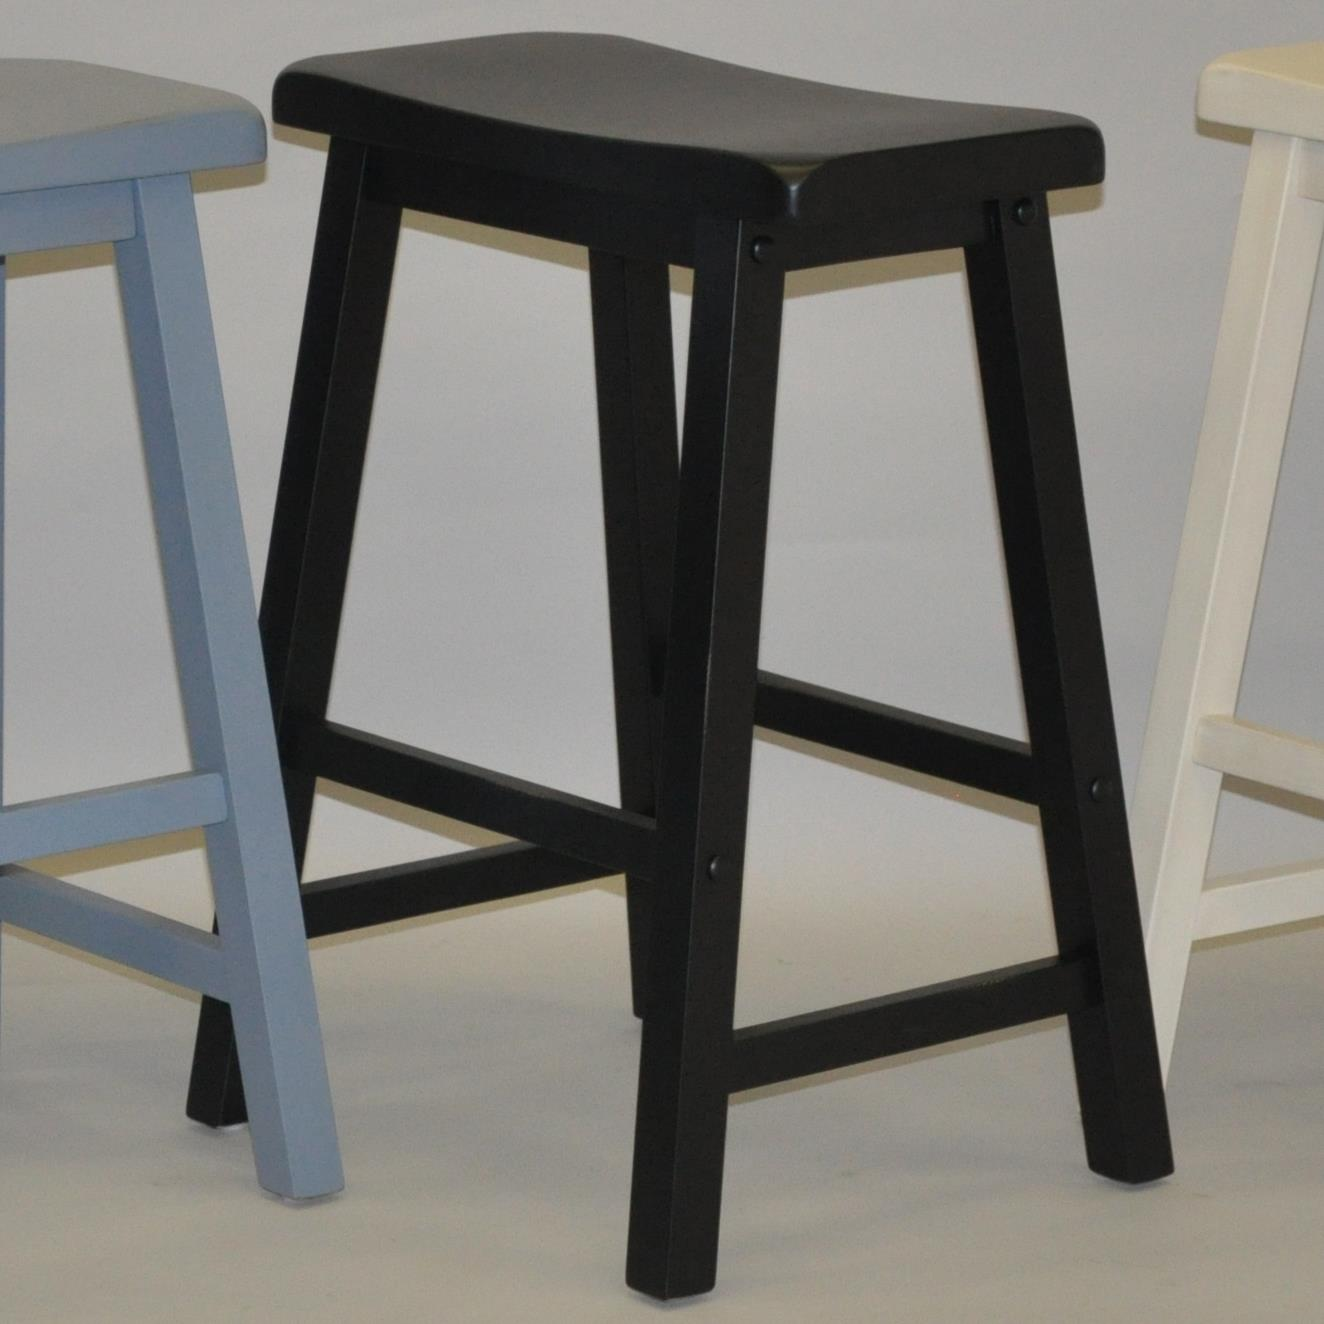 "E.C.I. Furniture Bar Stools 24"" Bar Stool - Item Number: 8501-10-BS"